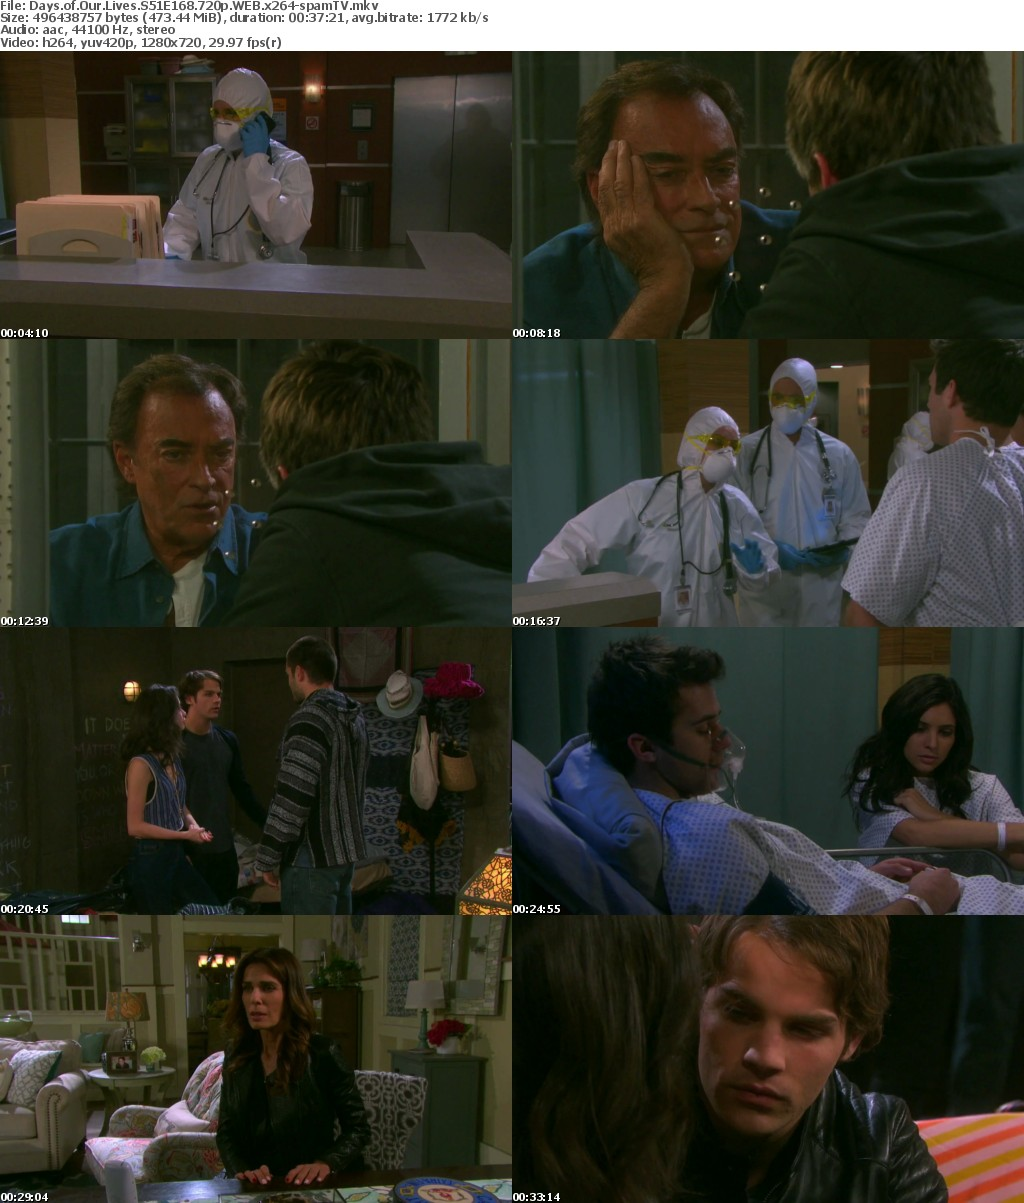 Days of Our Lives S51E168 720p WEB x264-spamTV